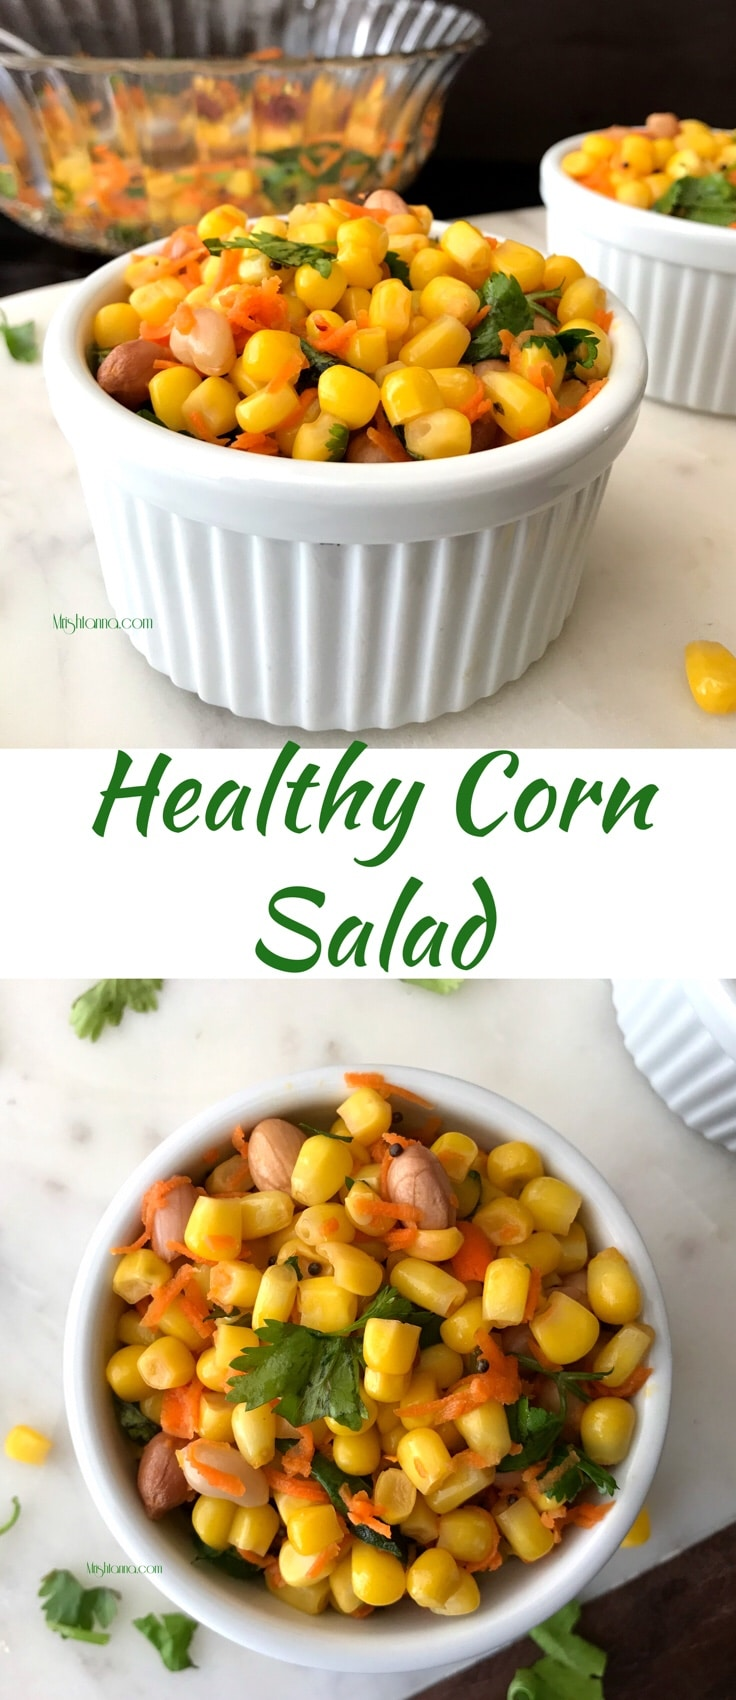 Healthy Corn Salad